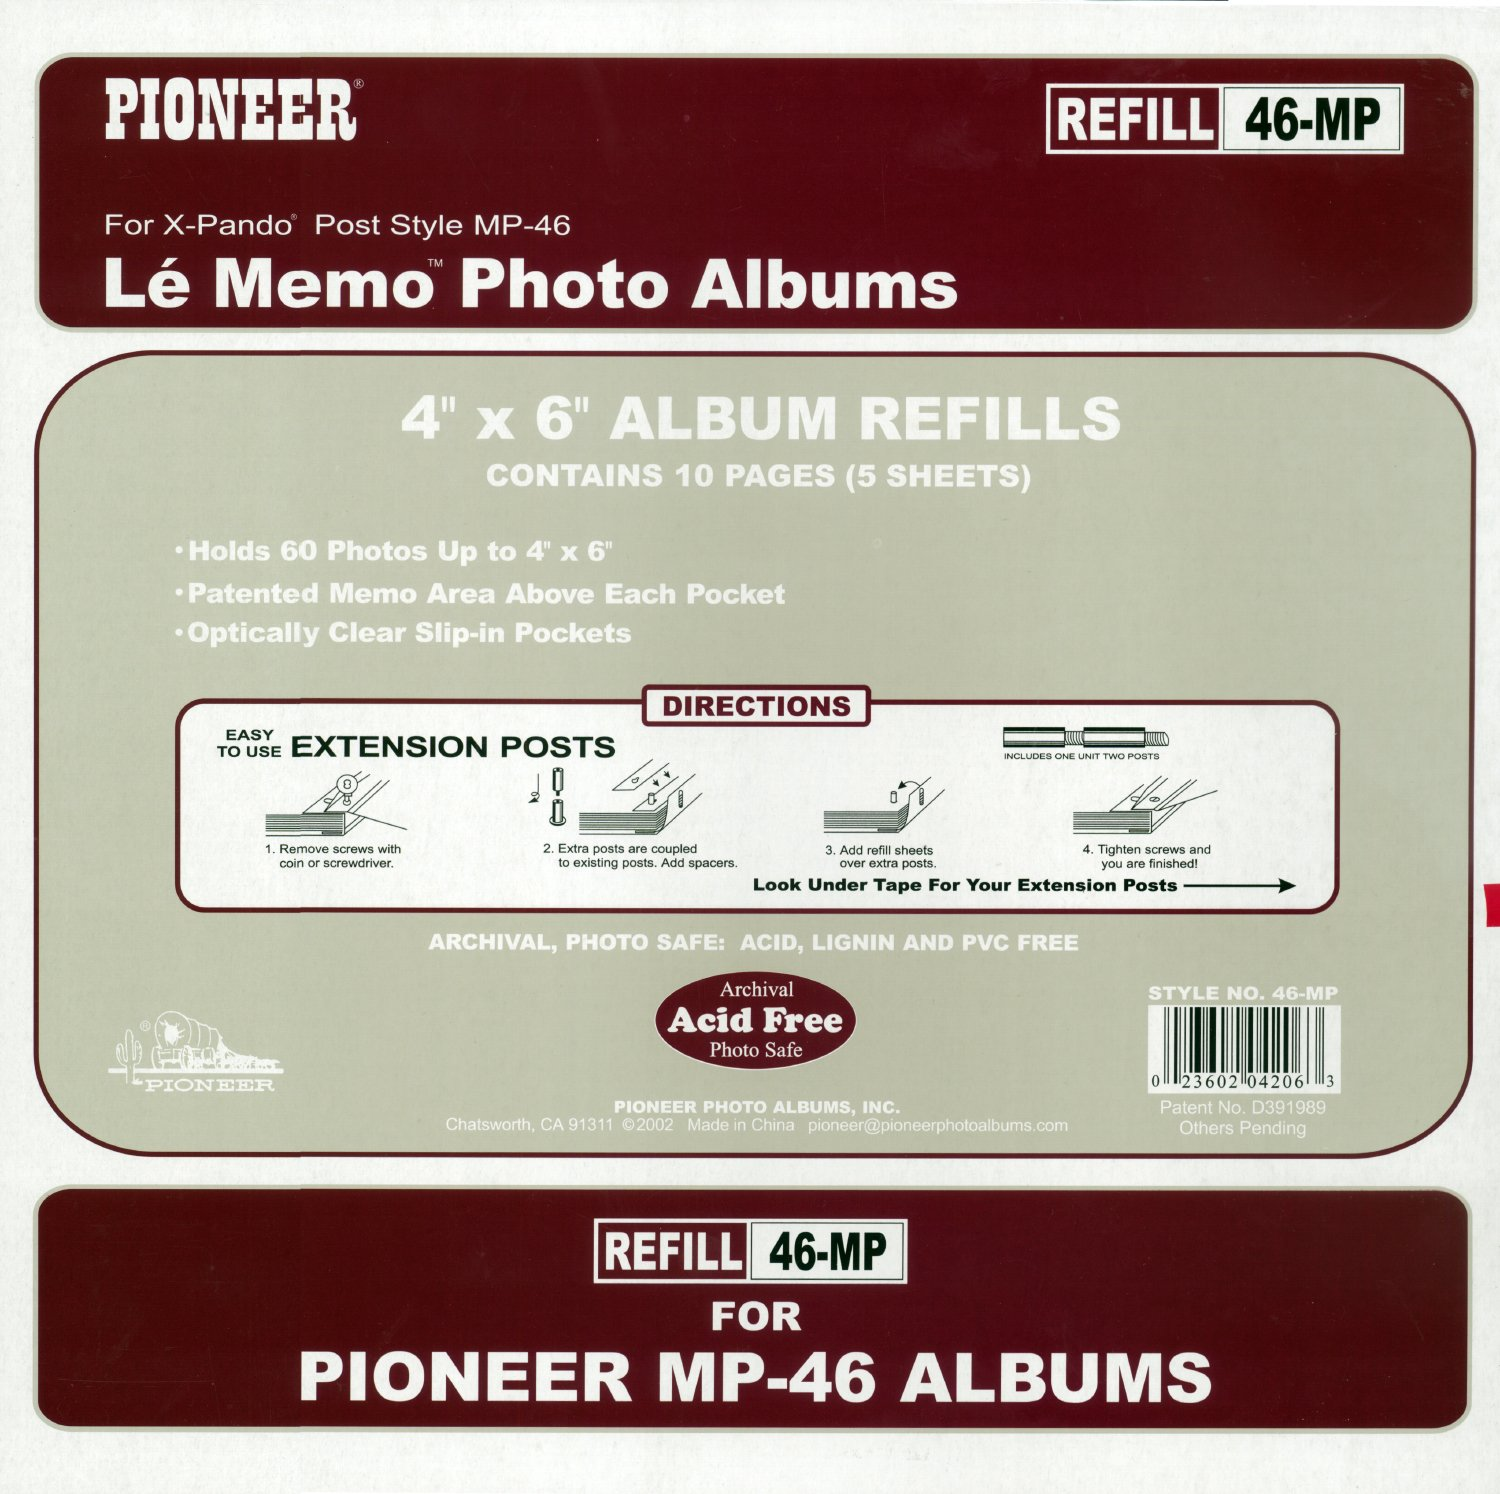 amazoncom pioneer memo pocket album refill 4 inch by 6 inch for mp 46 albums home improvement